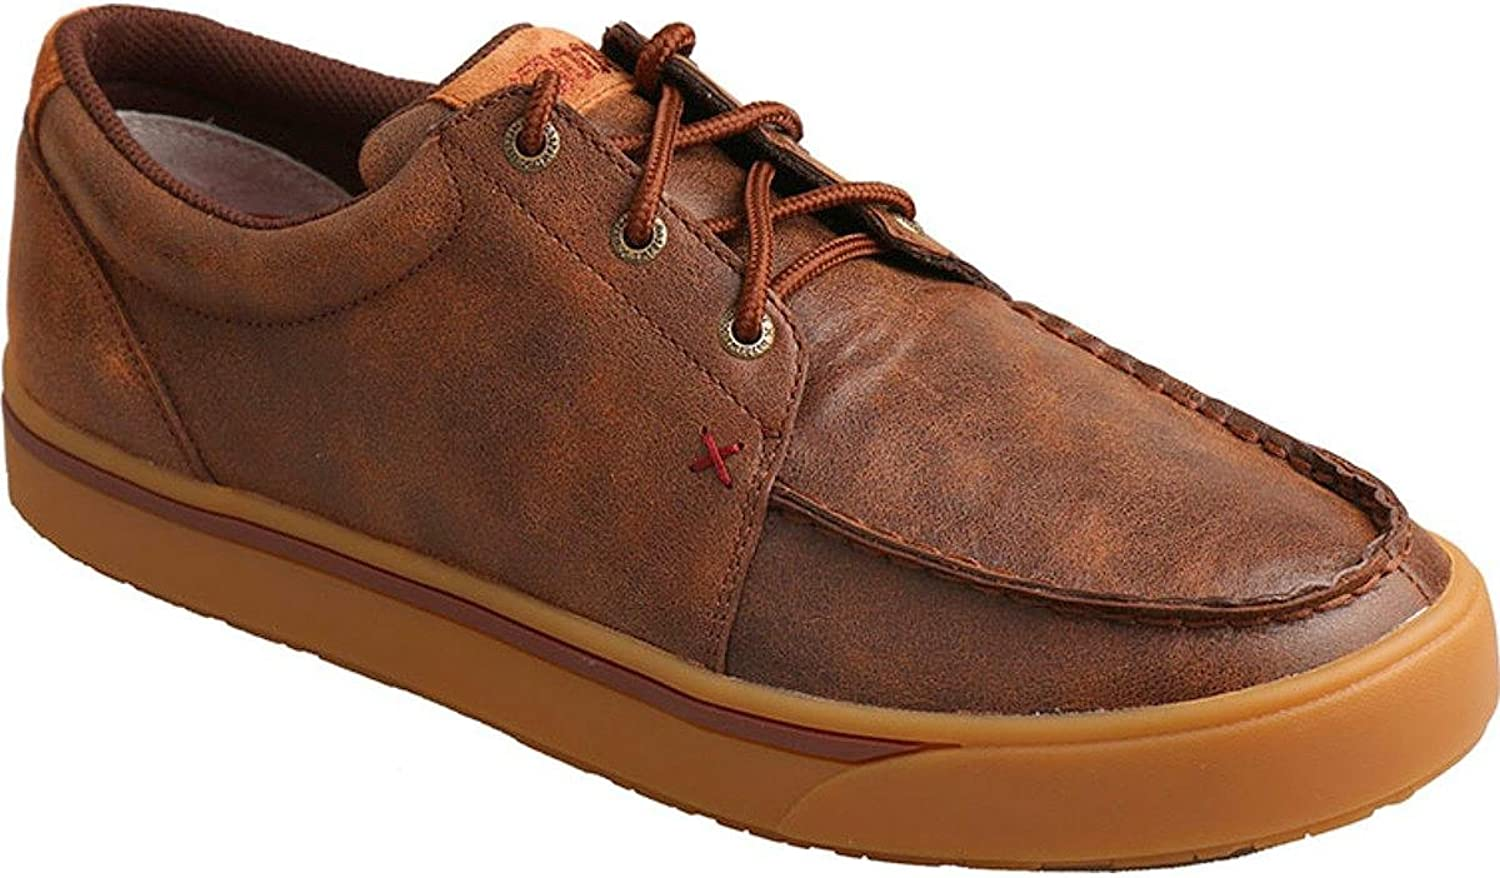 Twisted X Boots Mens Rough Out Casual shoes